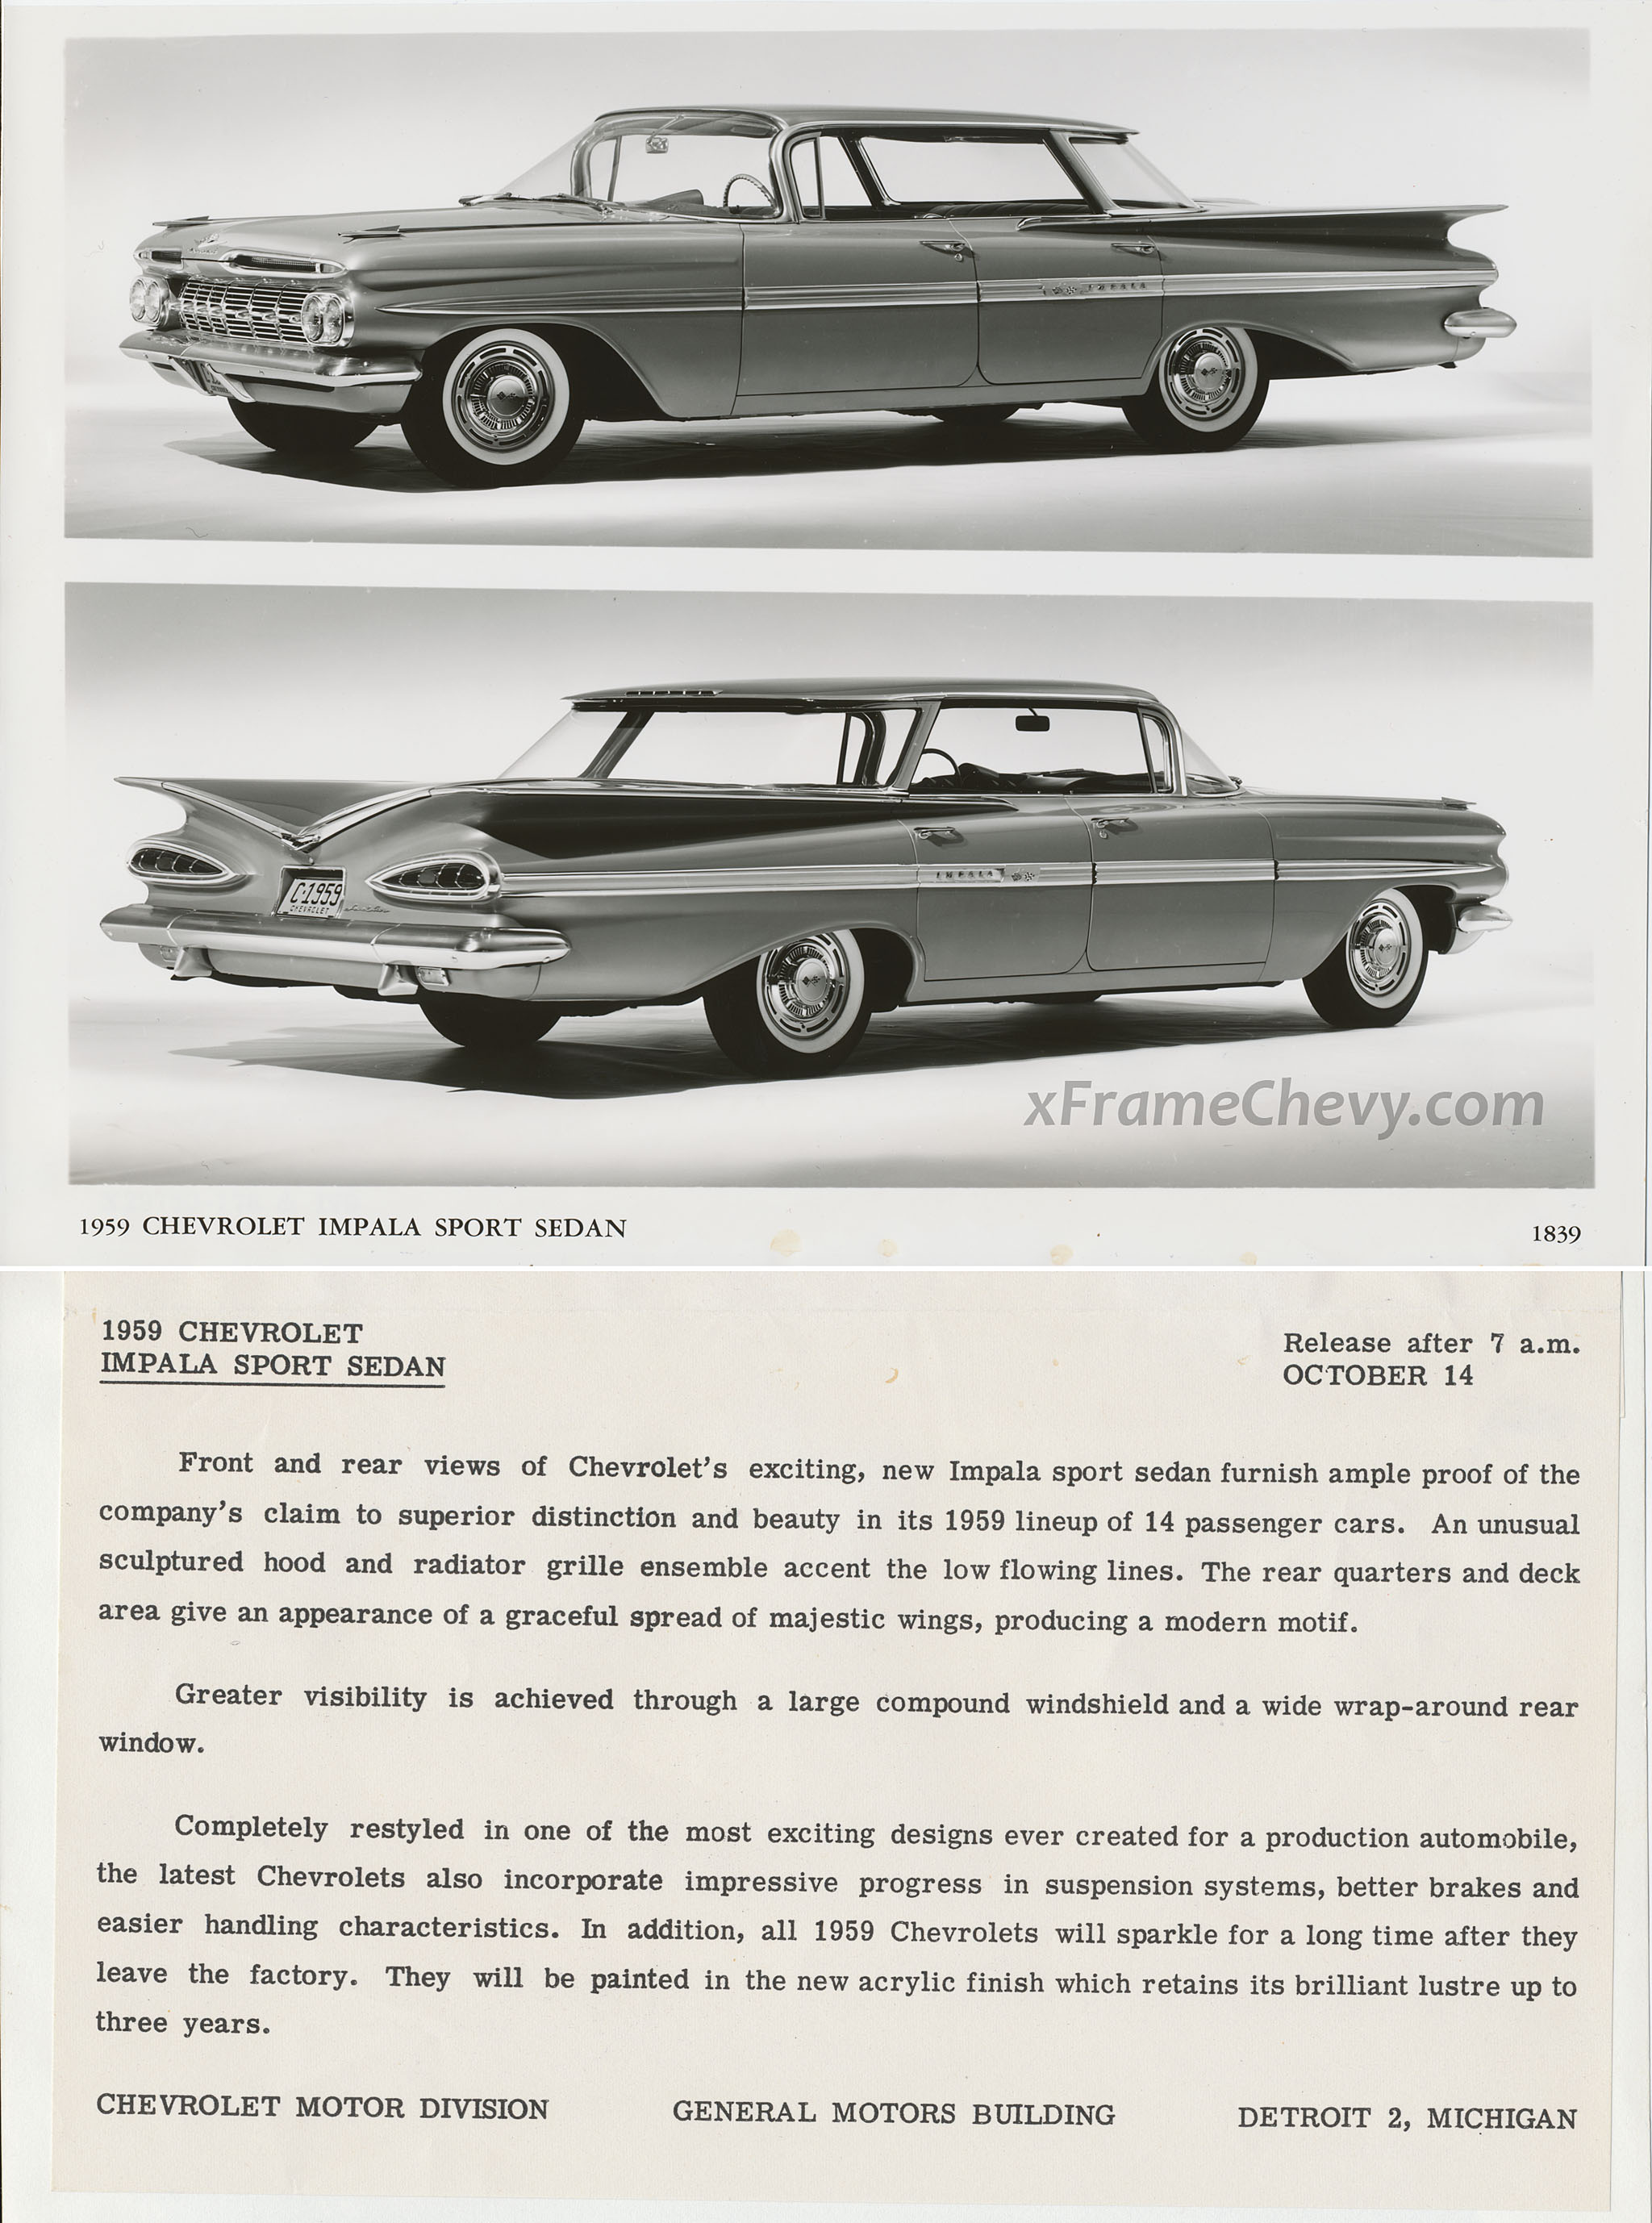 GM Press Release Photo - 1959 Chevrolet Impala Sport Sedan